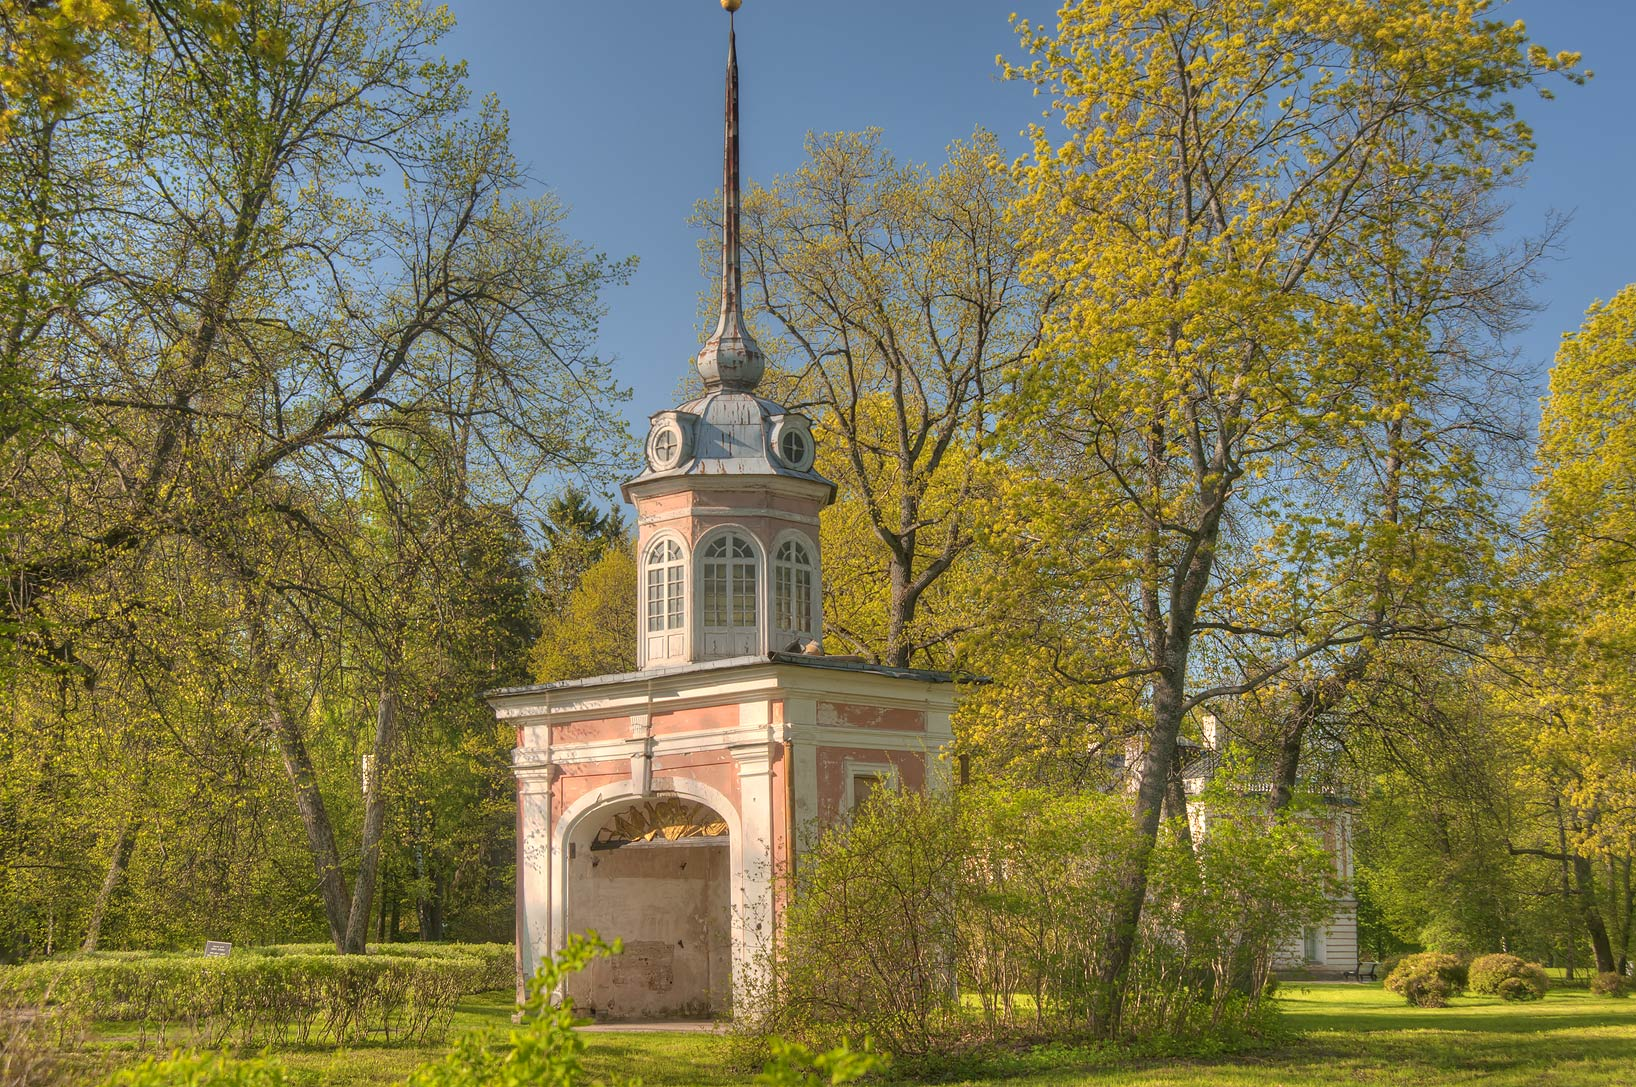 Petershtadt Gates in a park in Lomonosov (Oranienbaum). West from St.Petersburg, Russia